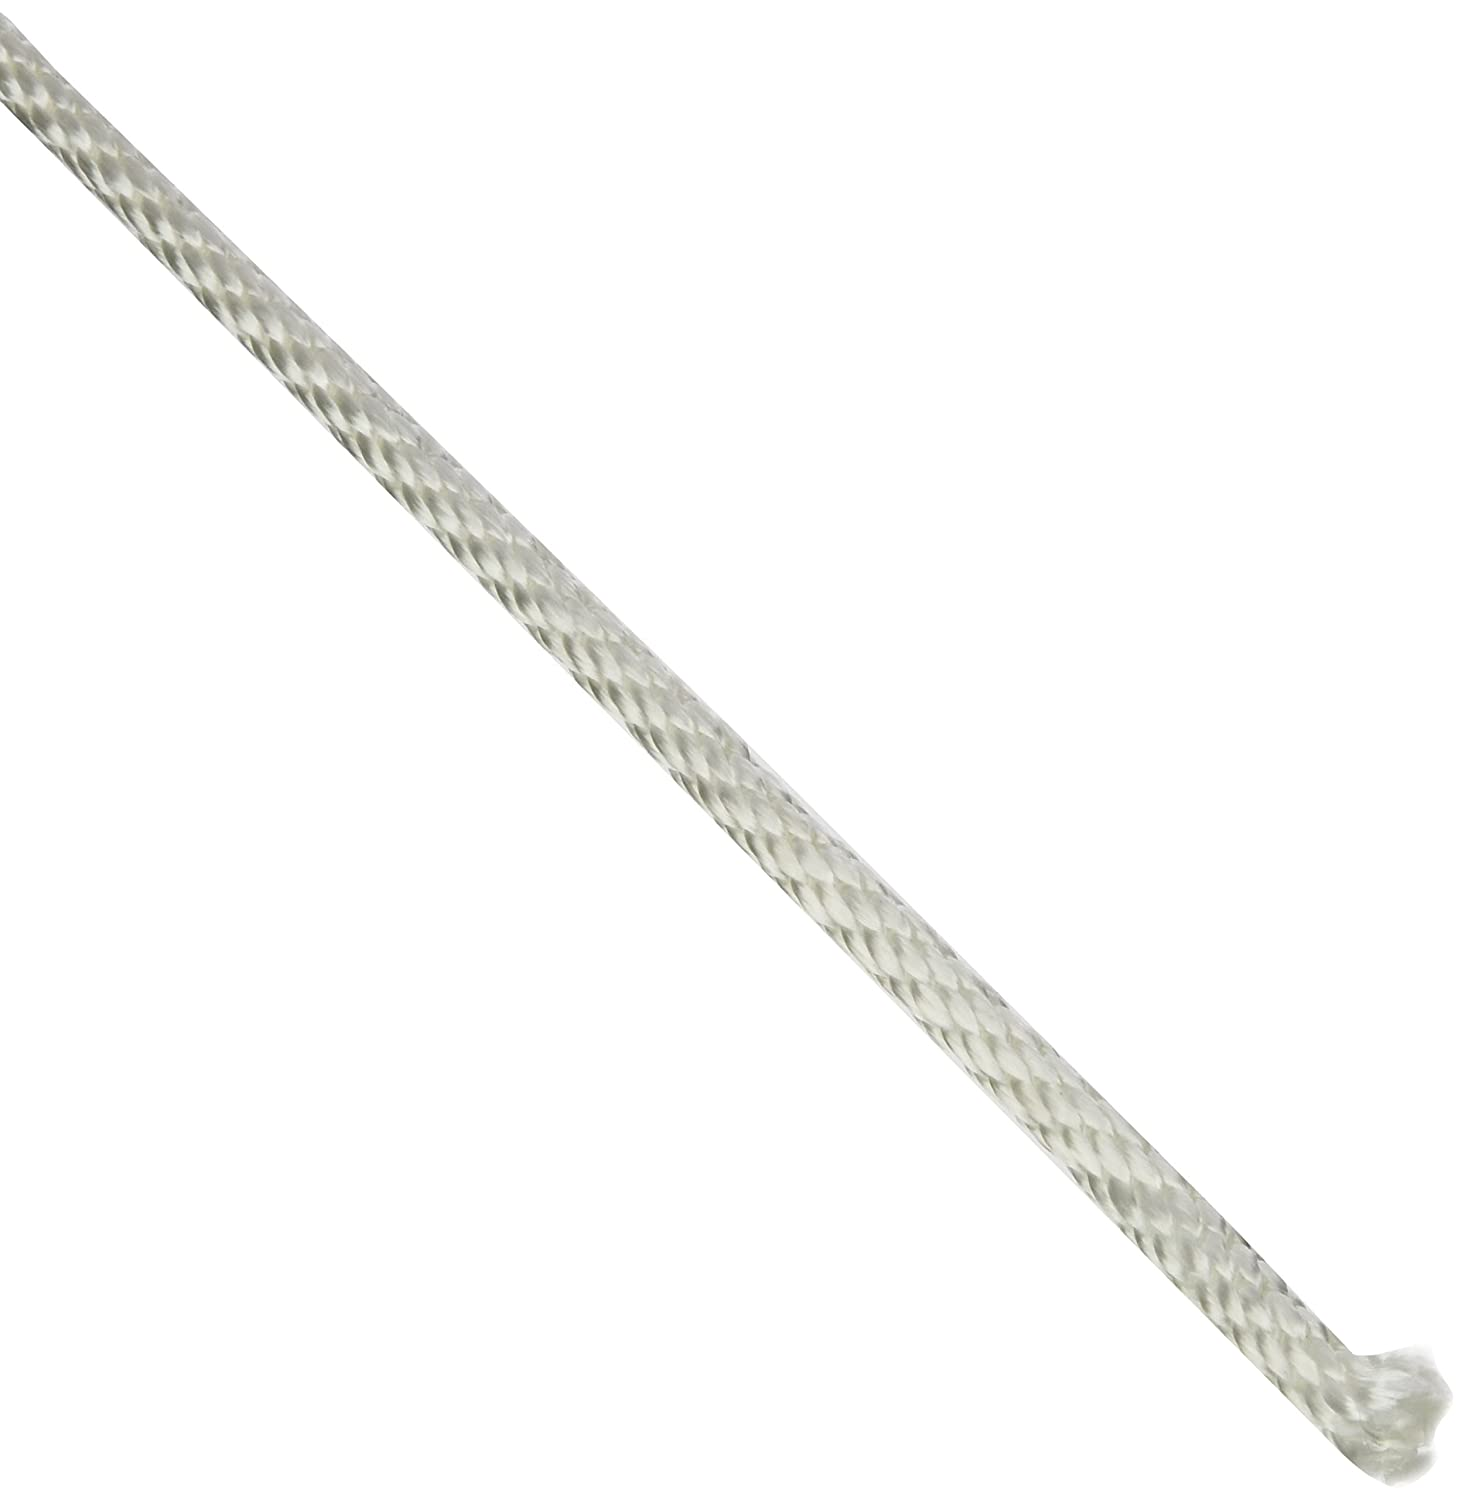 White HORIZON DISTRIBUTION 710080-00500-0 Cordage Source Solid Braided Nylon Rope 1//4-Inch by 500-Feet